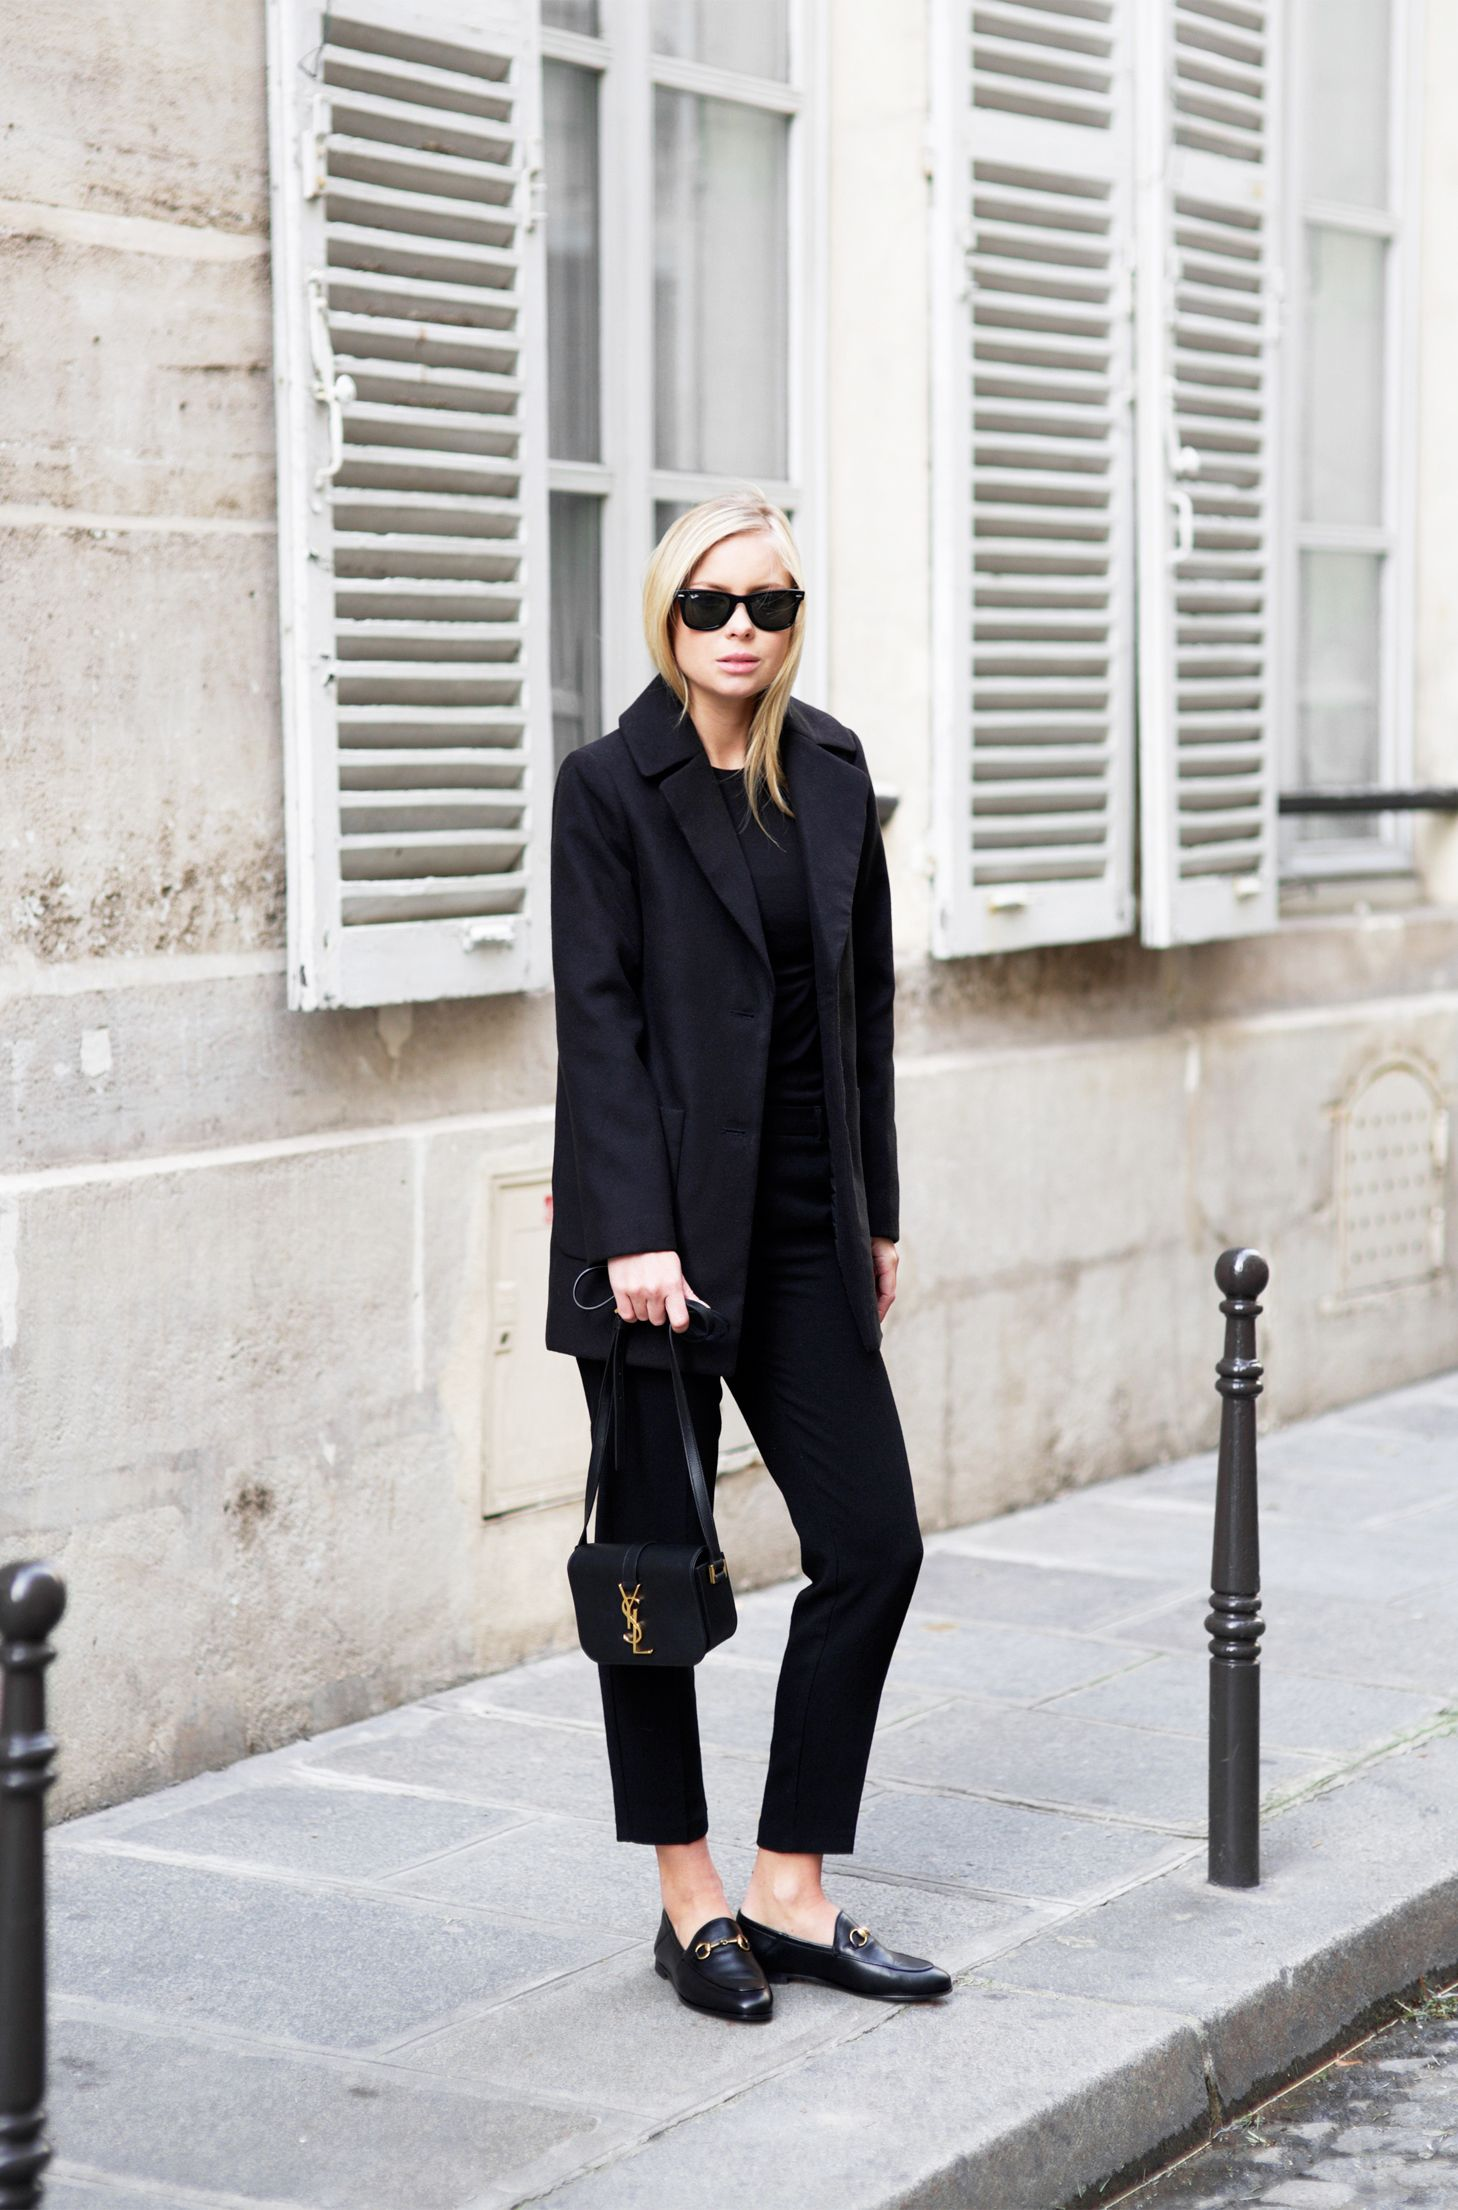 05cce18d4552 Loafers can be the perfect finish to a smart outfit for work or a more  formal occasion. Victoria Tornegren looks sleek and elegant in a matching  blazer and ...